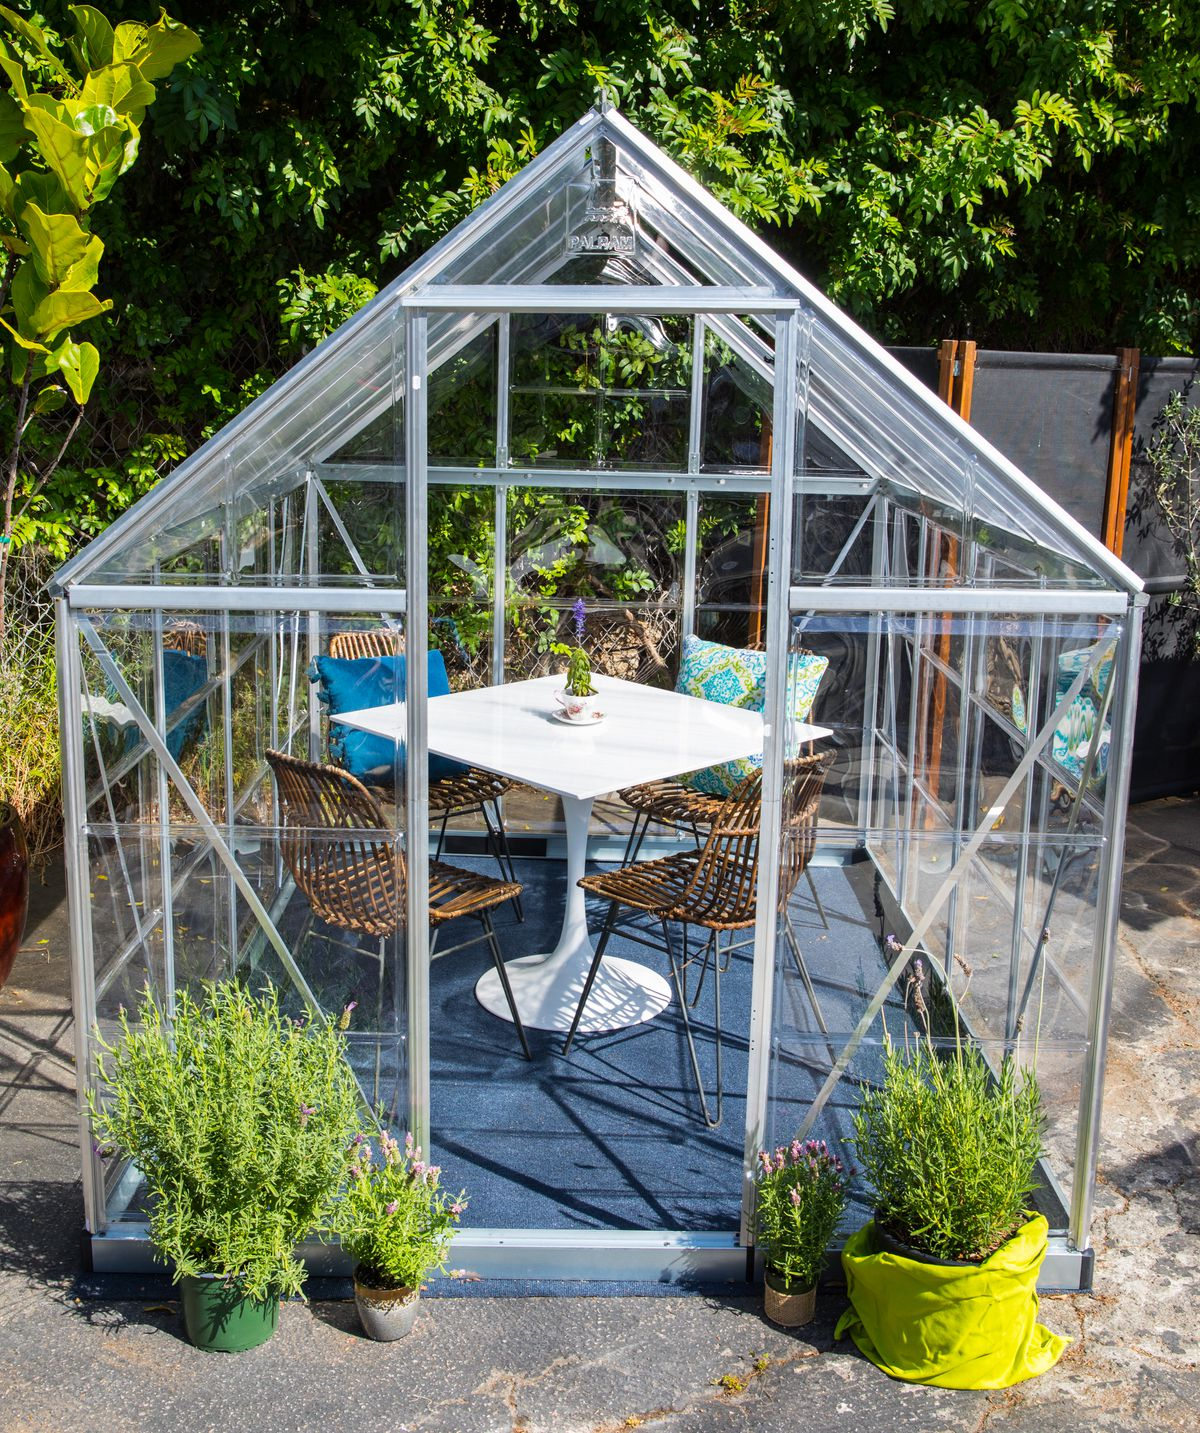 This Echo Park Cafe Is Using Greenhouses For Socially Distant Outdoor Dining Eater La